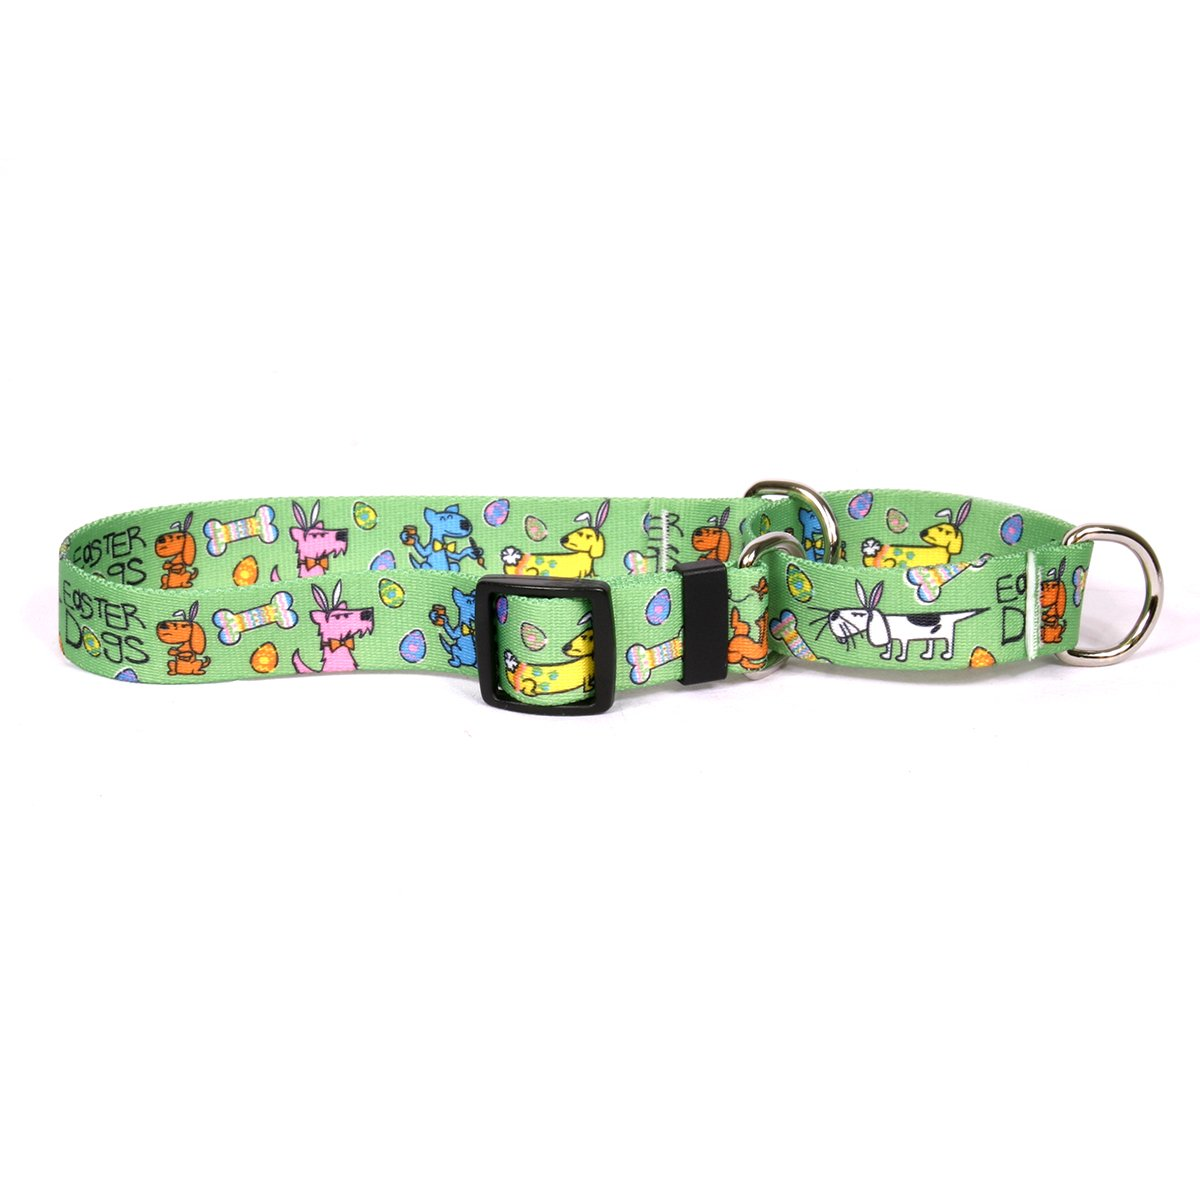 Yellow Dog Design Easter Dogs Martingale Dog Collar Fits Neck 9 To 12'', X-Small/3/4